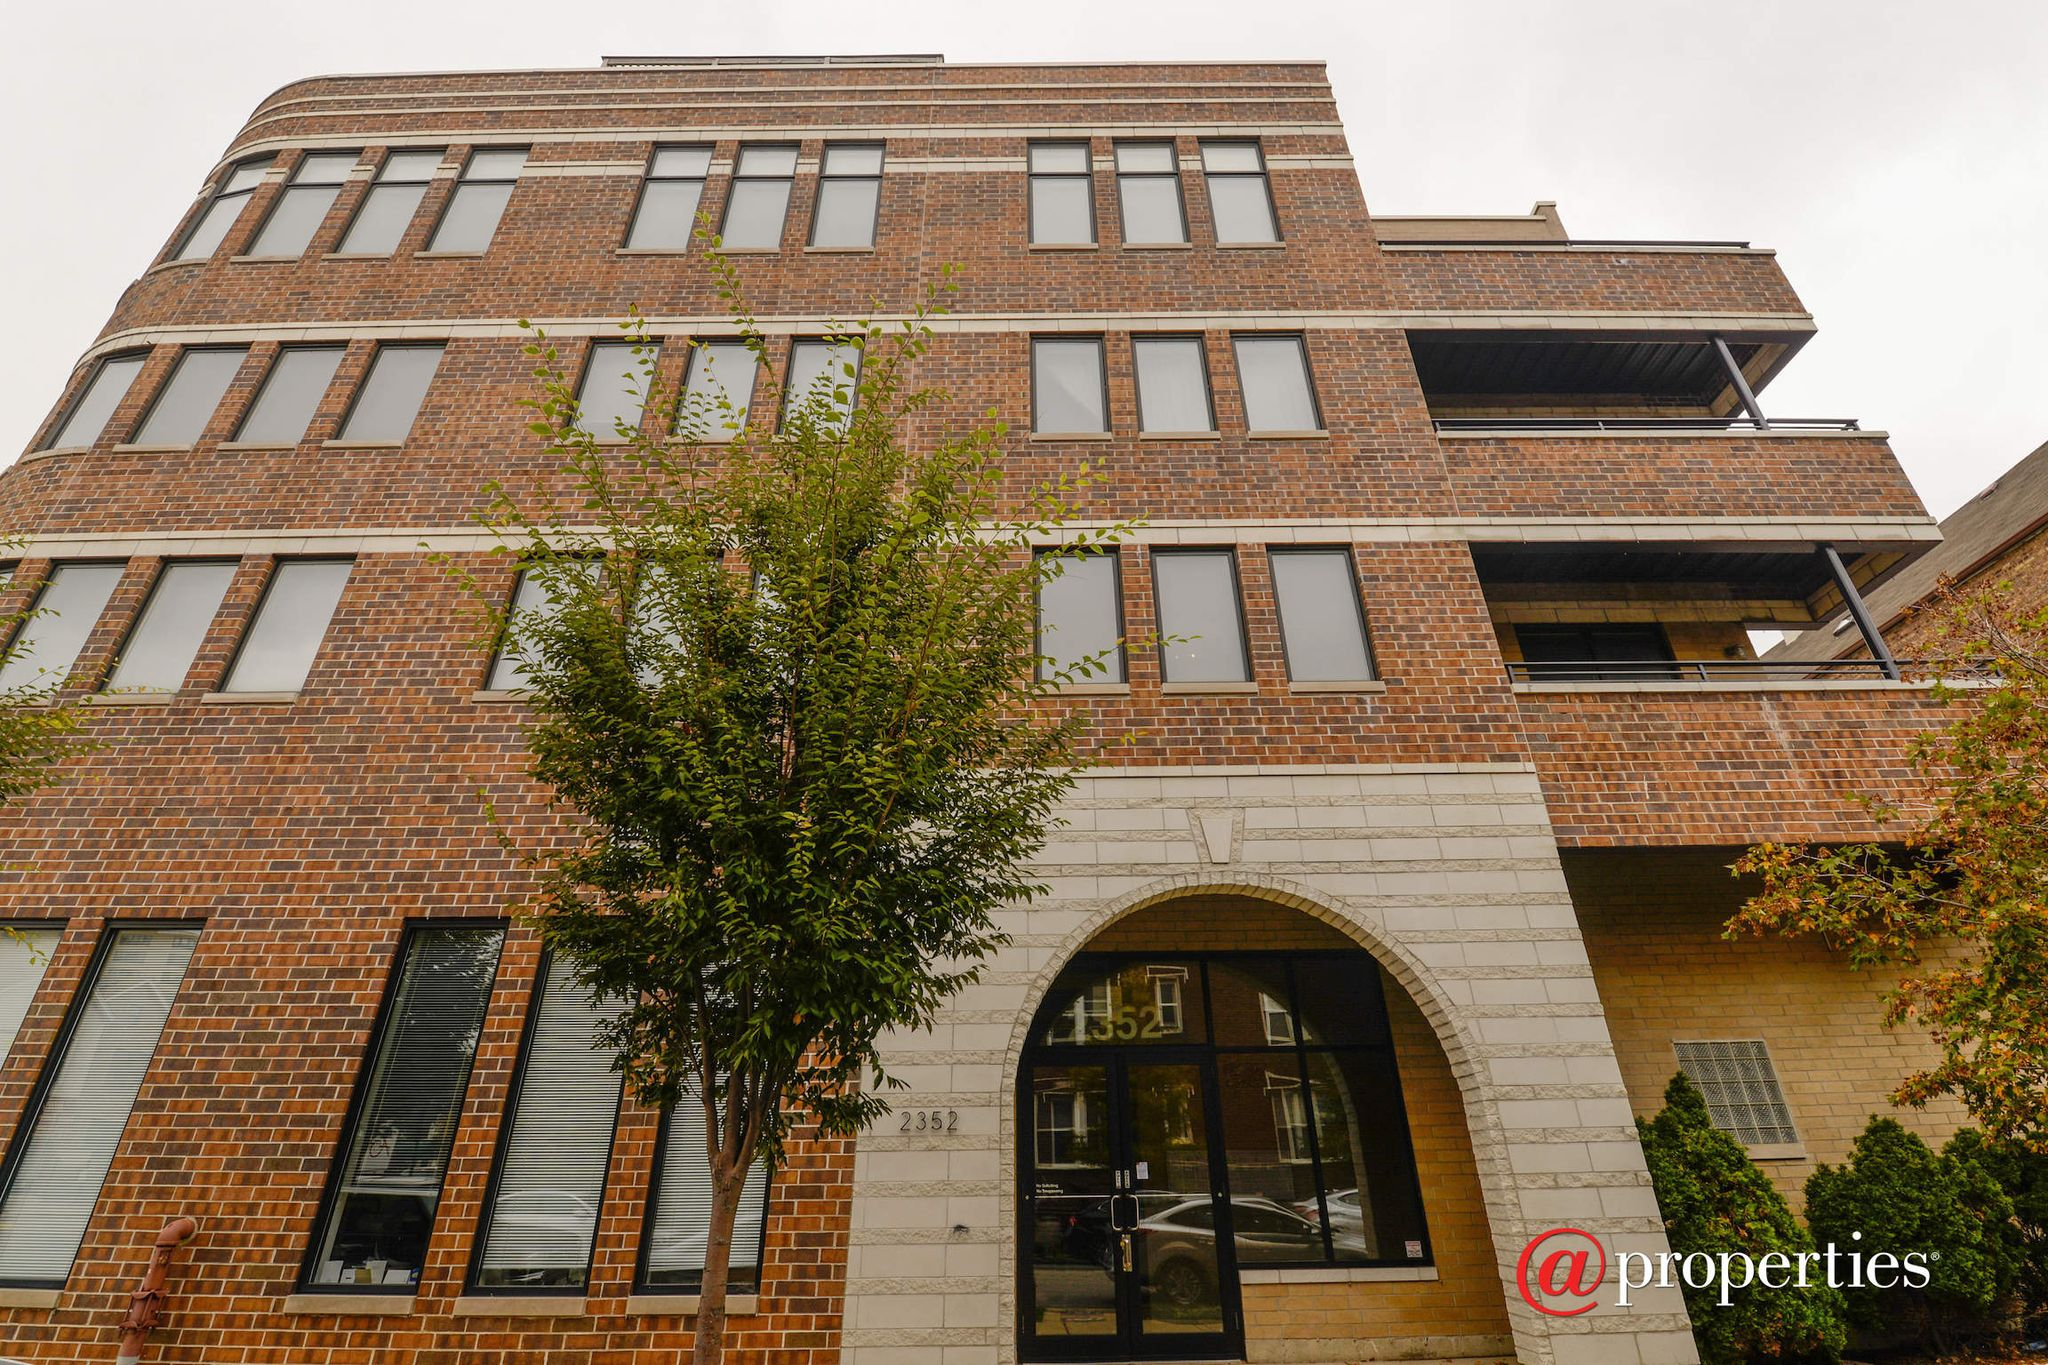 2352 W Shakespeare Ave #3A